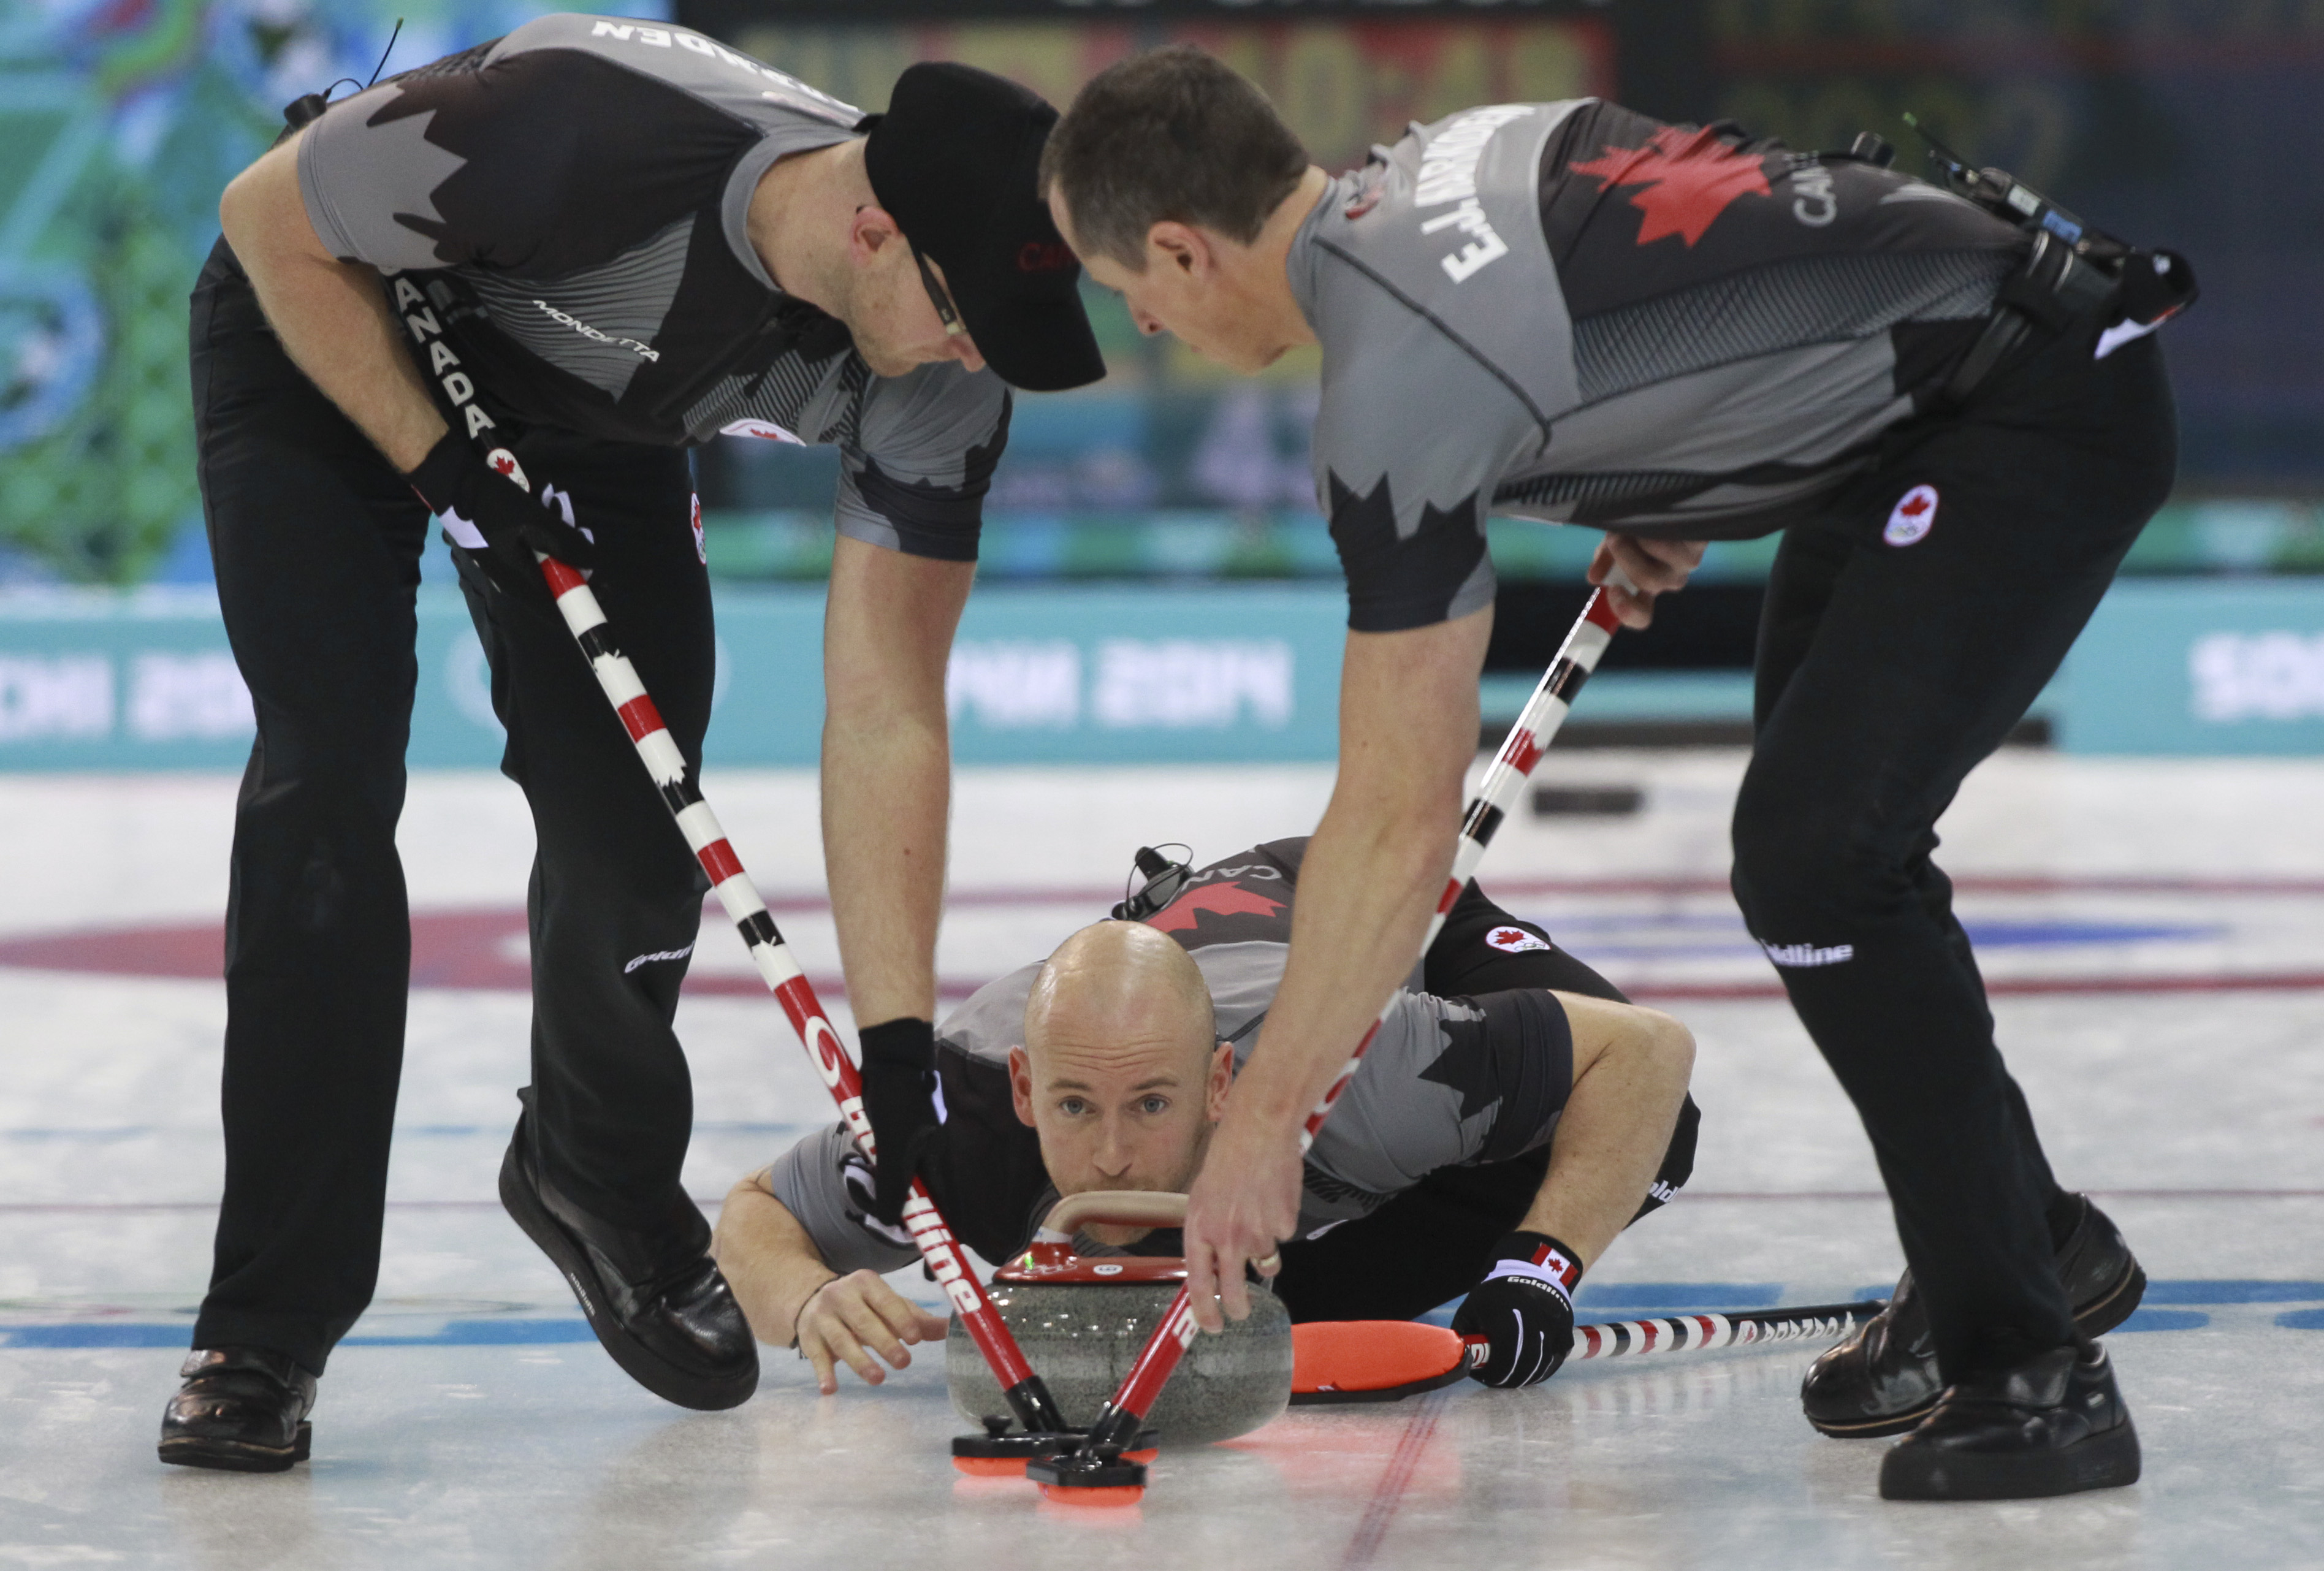 Brad Jacobs lost to Sweden 7 - 6 in an extra end at the Sochi Winter Olympics in Sochi, Russia, Tuesday, Feb. 11, 2014.  THE CANADIAN PRESS/HO, COC - Mike Ridewood